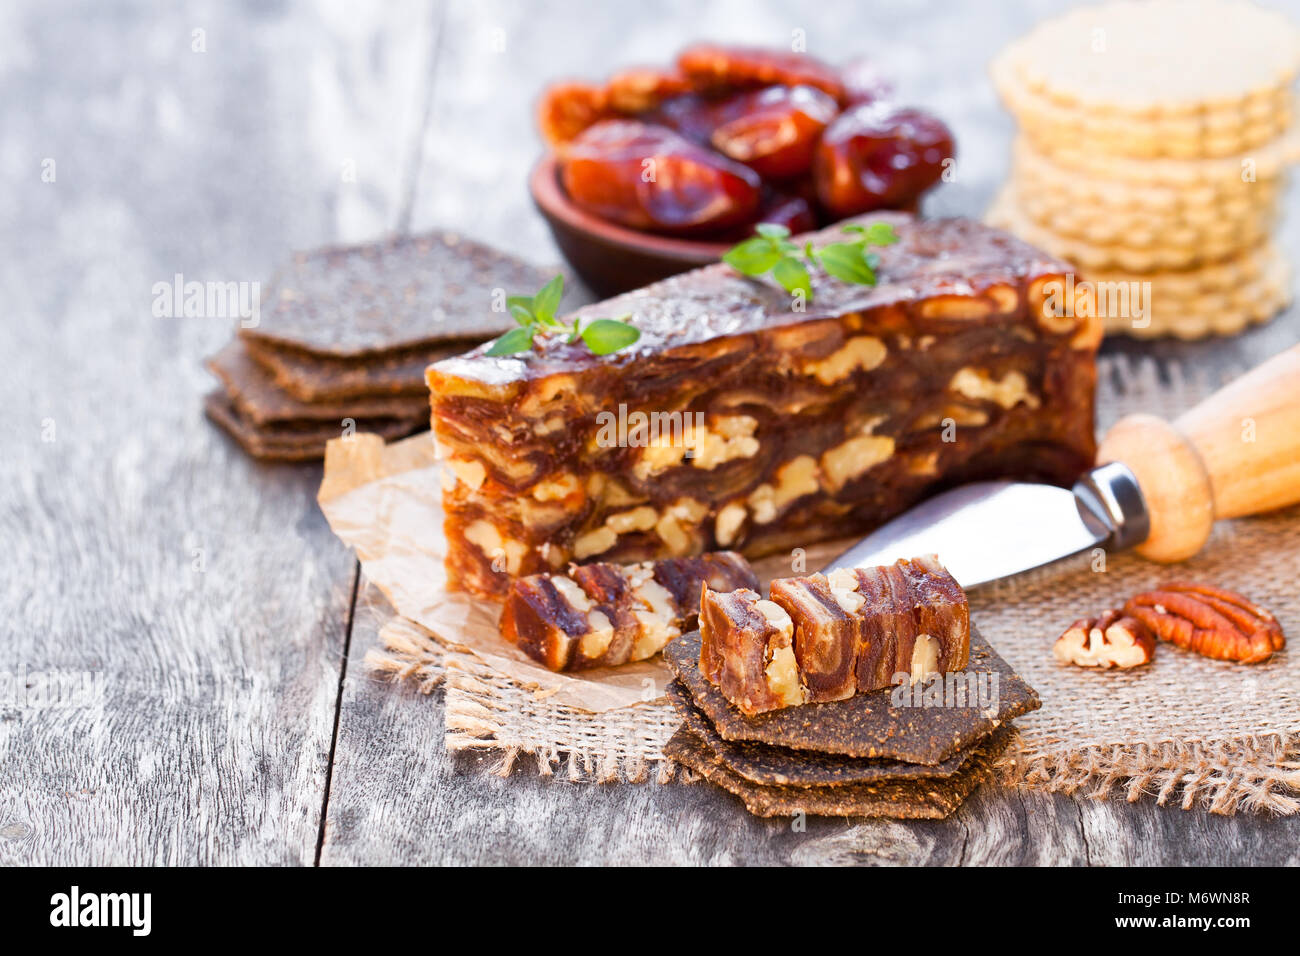 Date  walnut wedge with multigrain crackers on wooden table - Stock Image